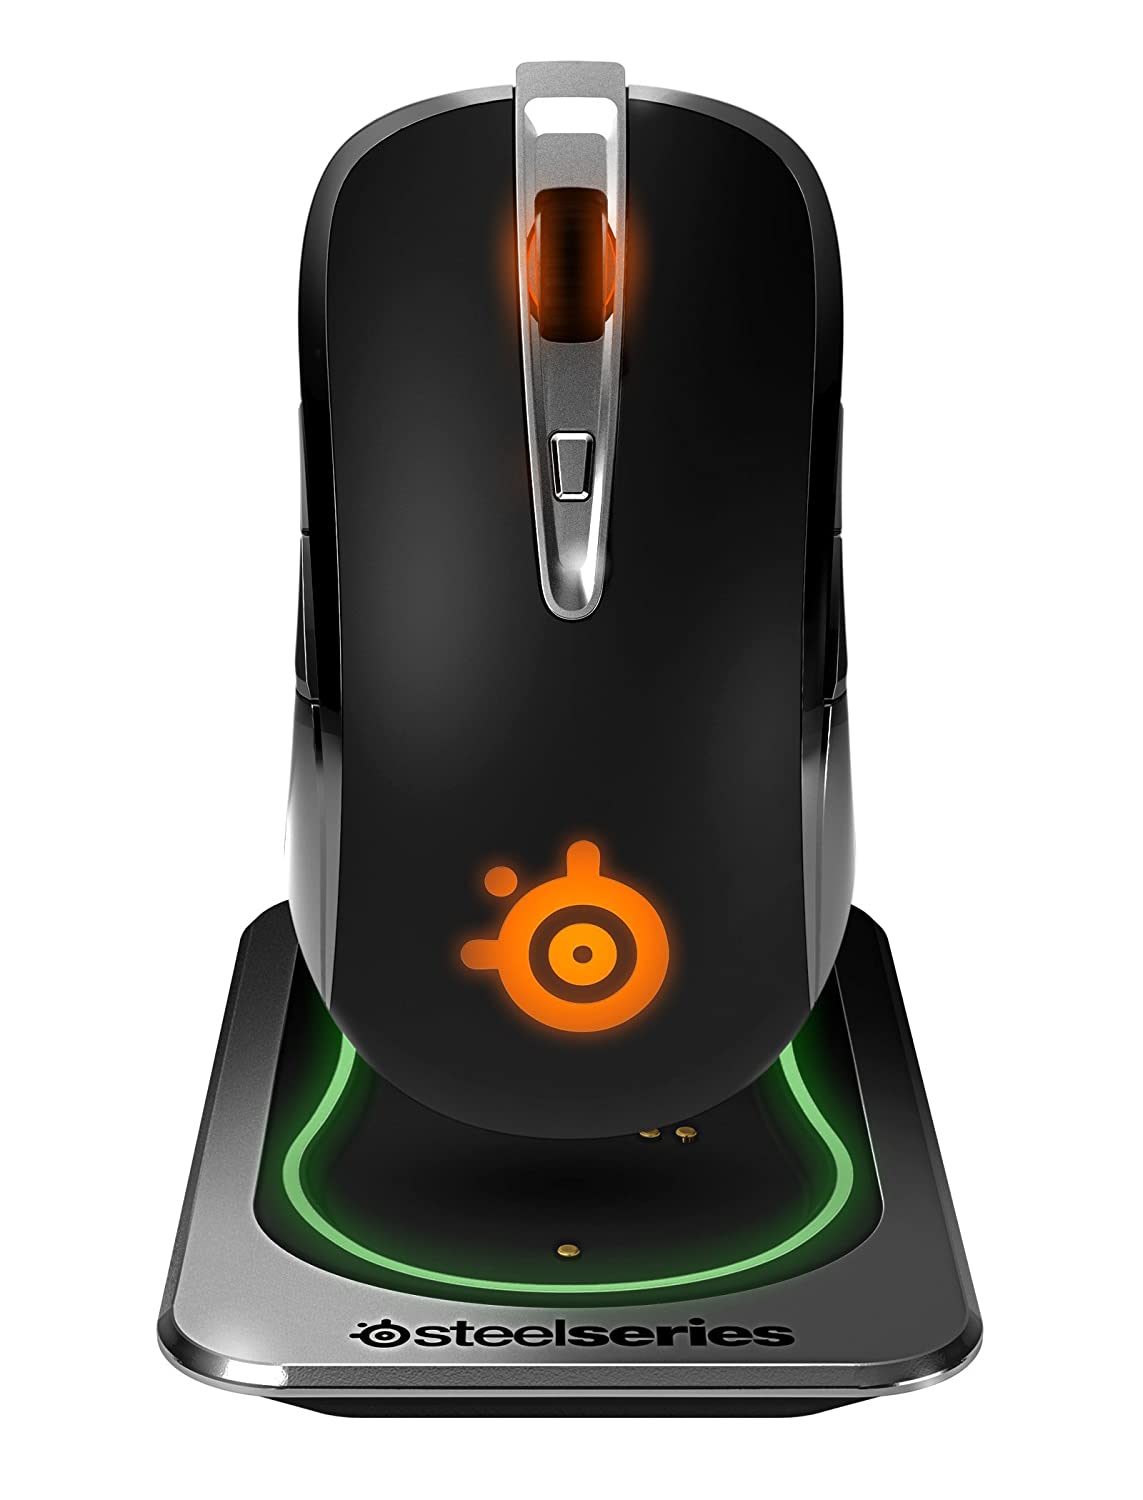 Buy Steelseries Sensei 62250 Wireless Laser Gaming Mouse Mousepad Razer Speed 300x250 Mm Black Online At Low Prices In India Reviews Ratings